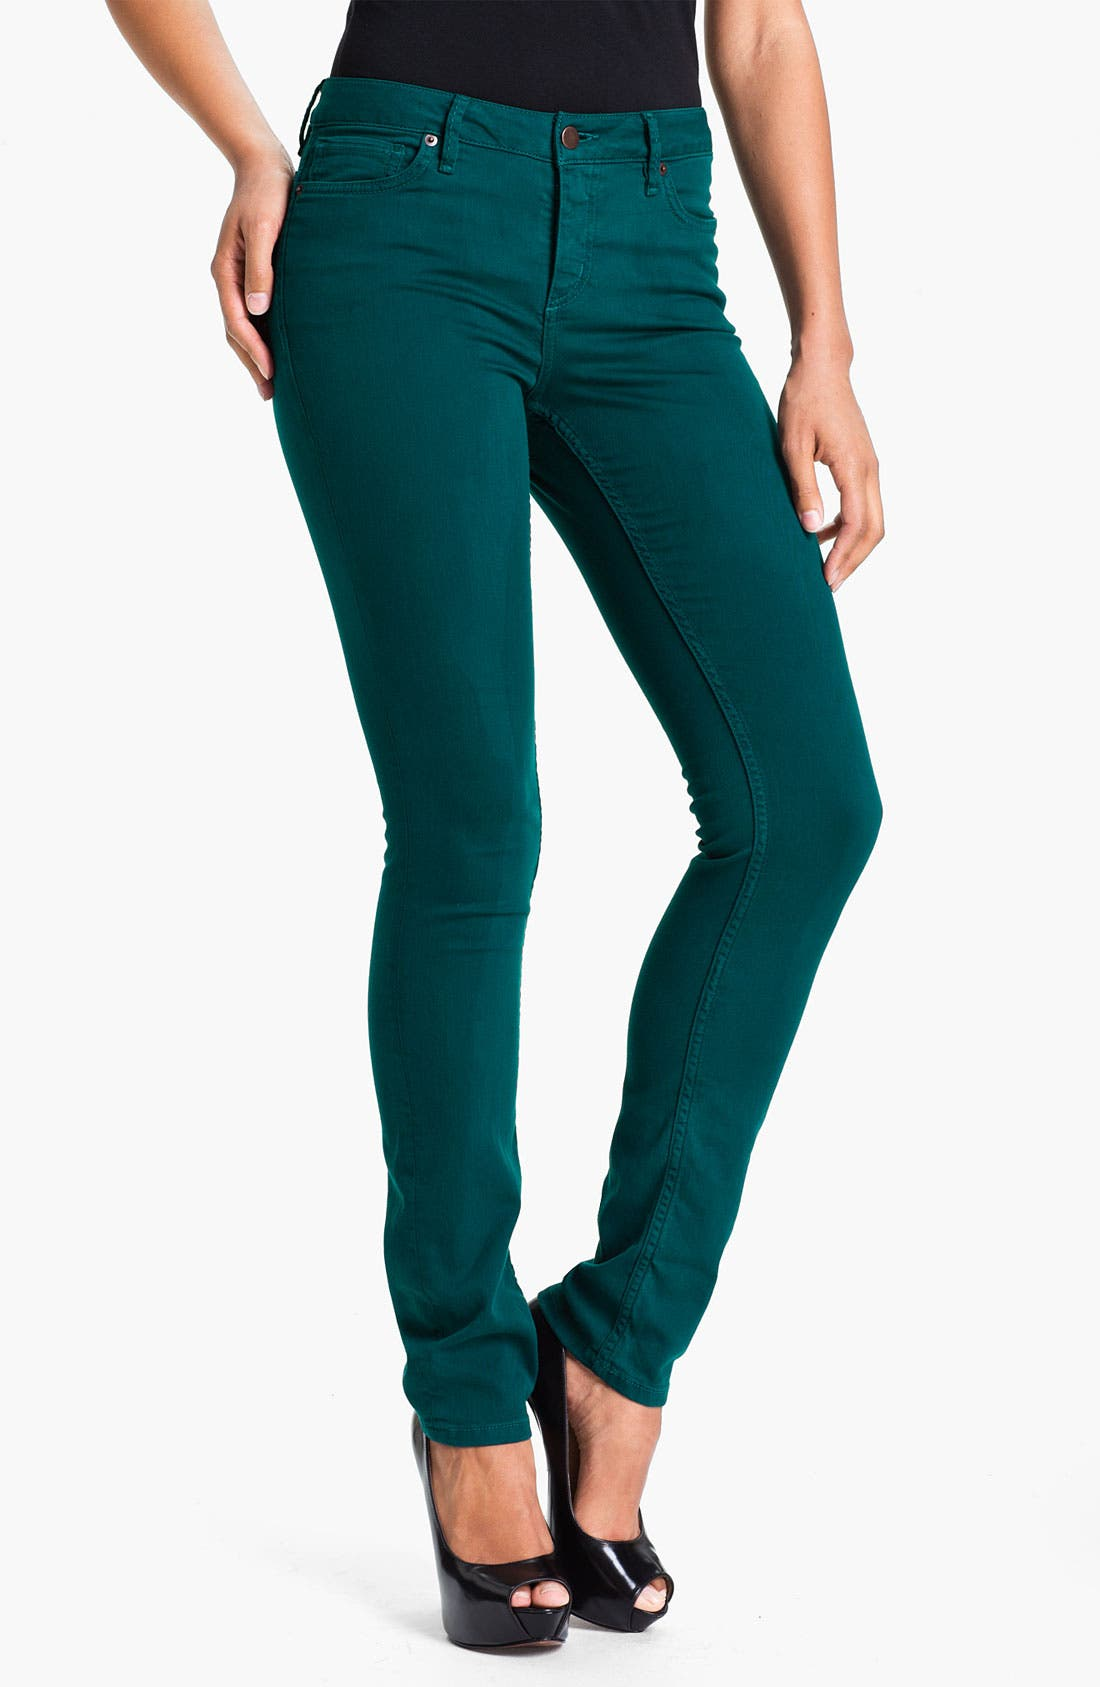 Alternate Image 1 Selected - Christopher Blue 'Sophia' Skinny Twill Jeans